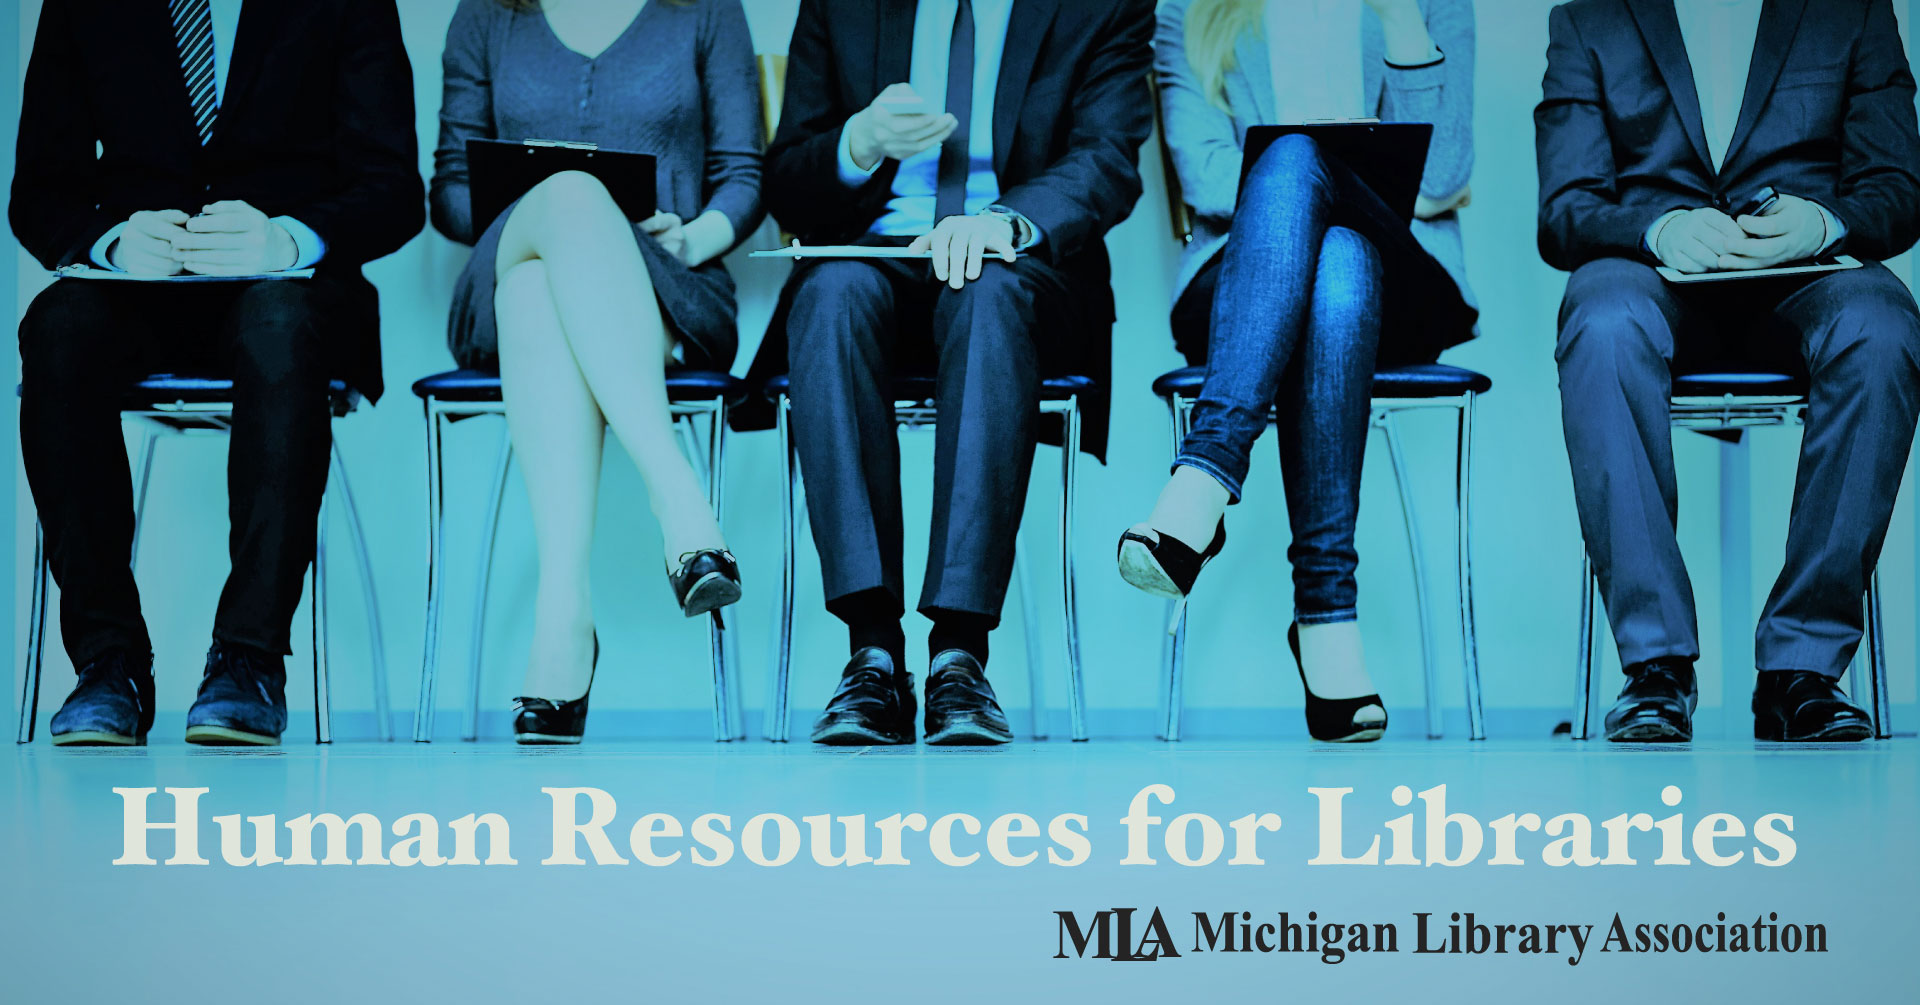 Human Resources for Libraries 2019